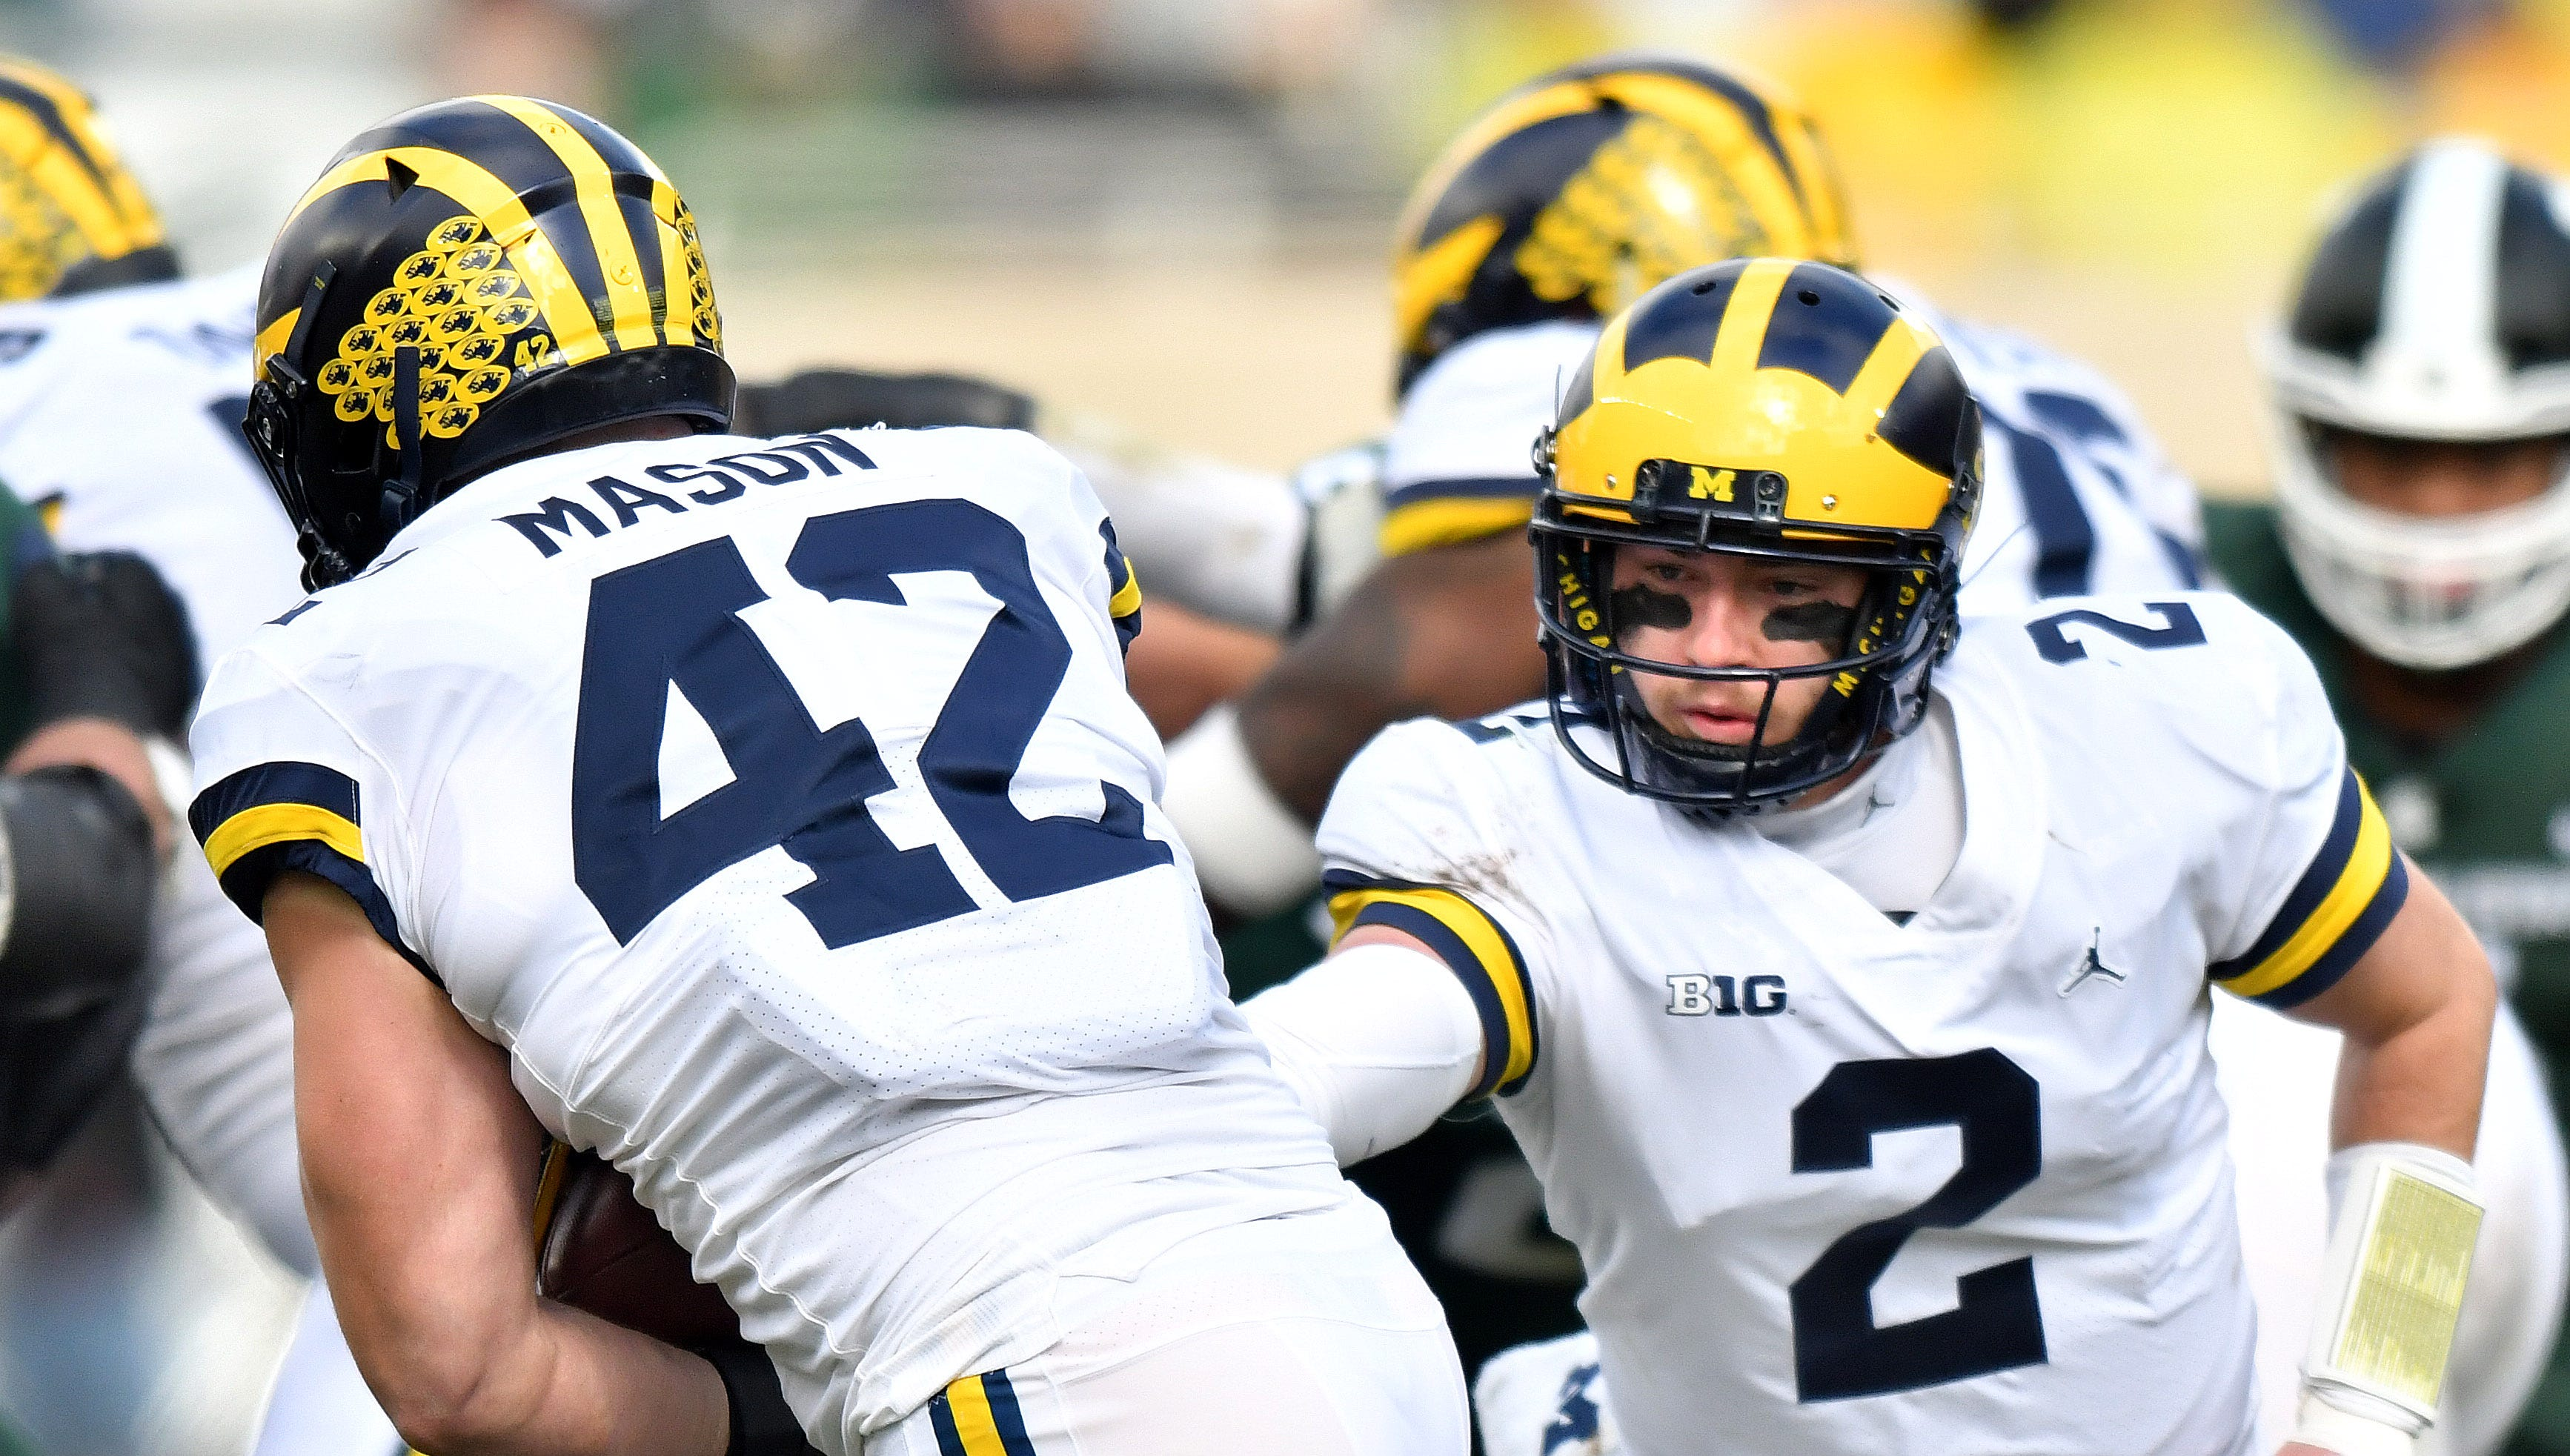 Wolverine quarterback Shea Patterson hands the ball to fullback Ben Mason (42), who rumbles for a first down in the second quarter.